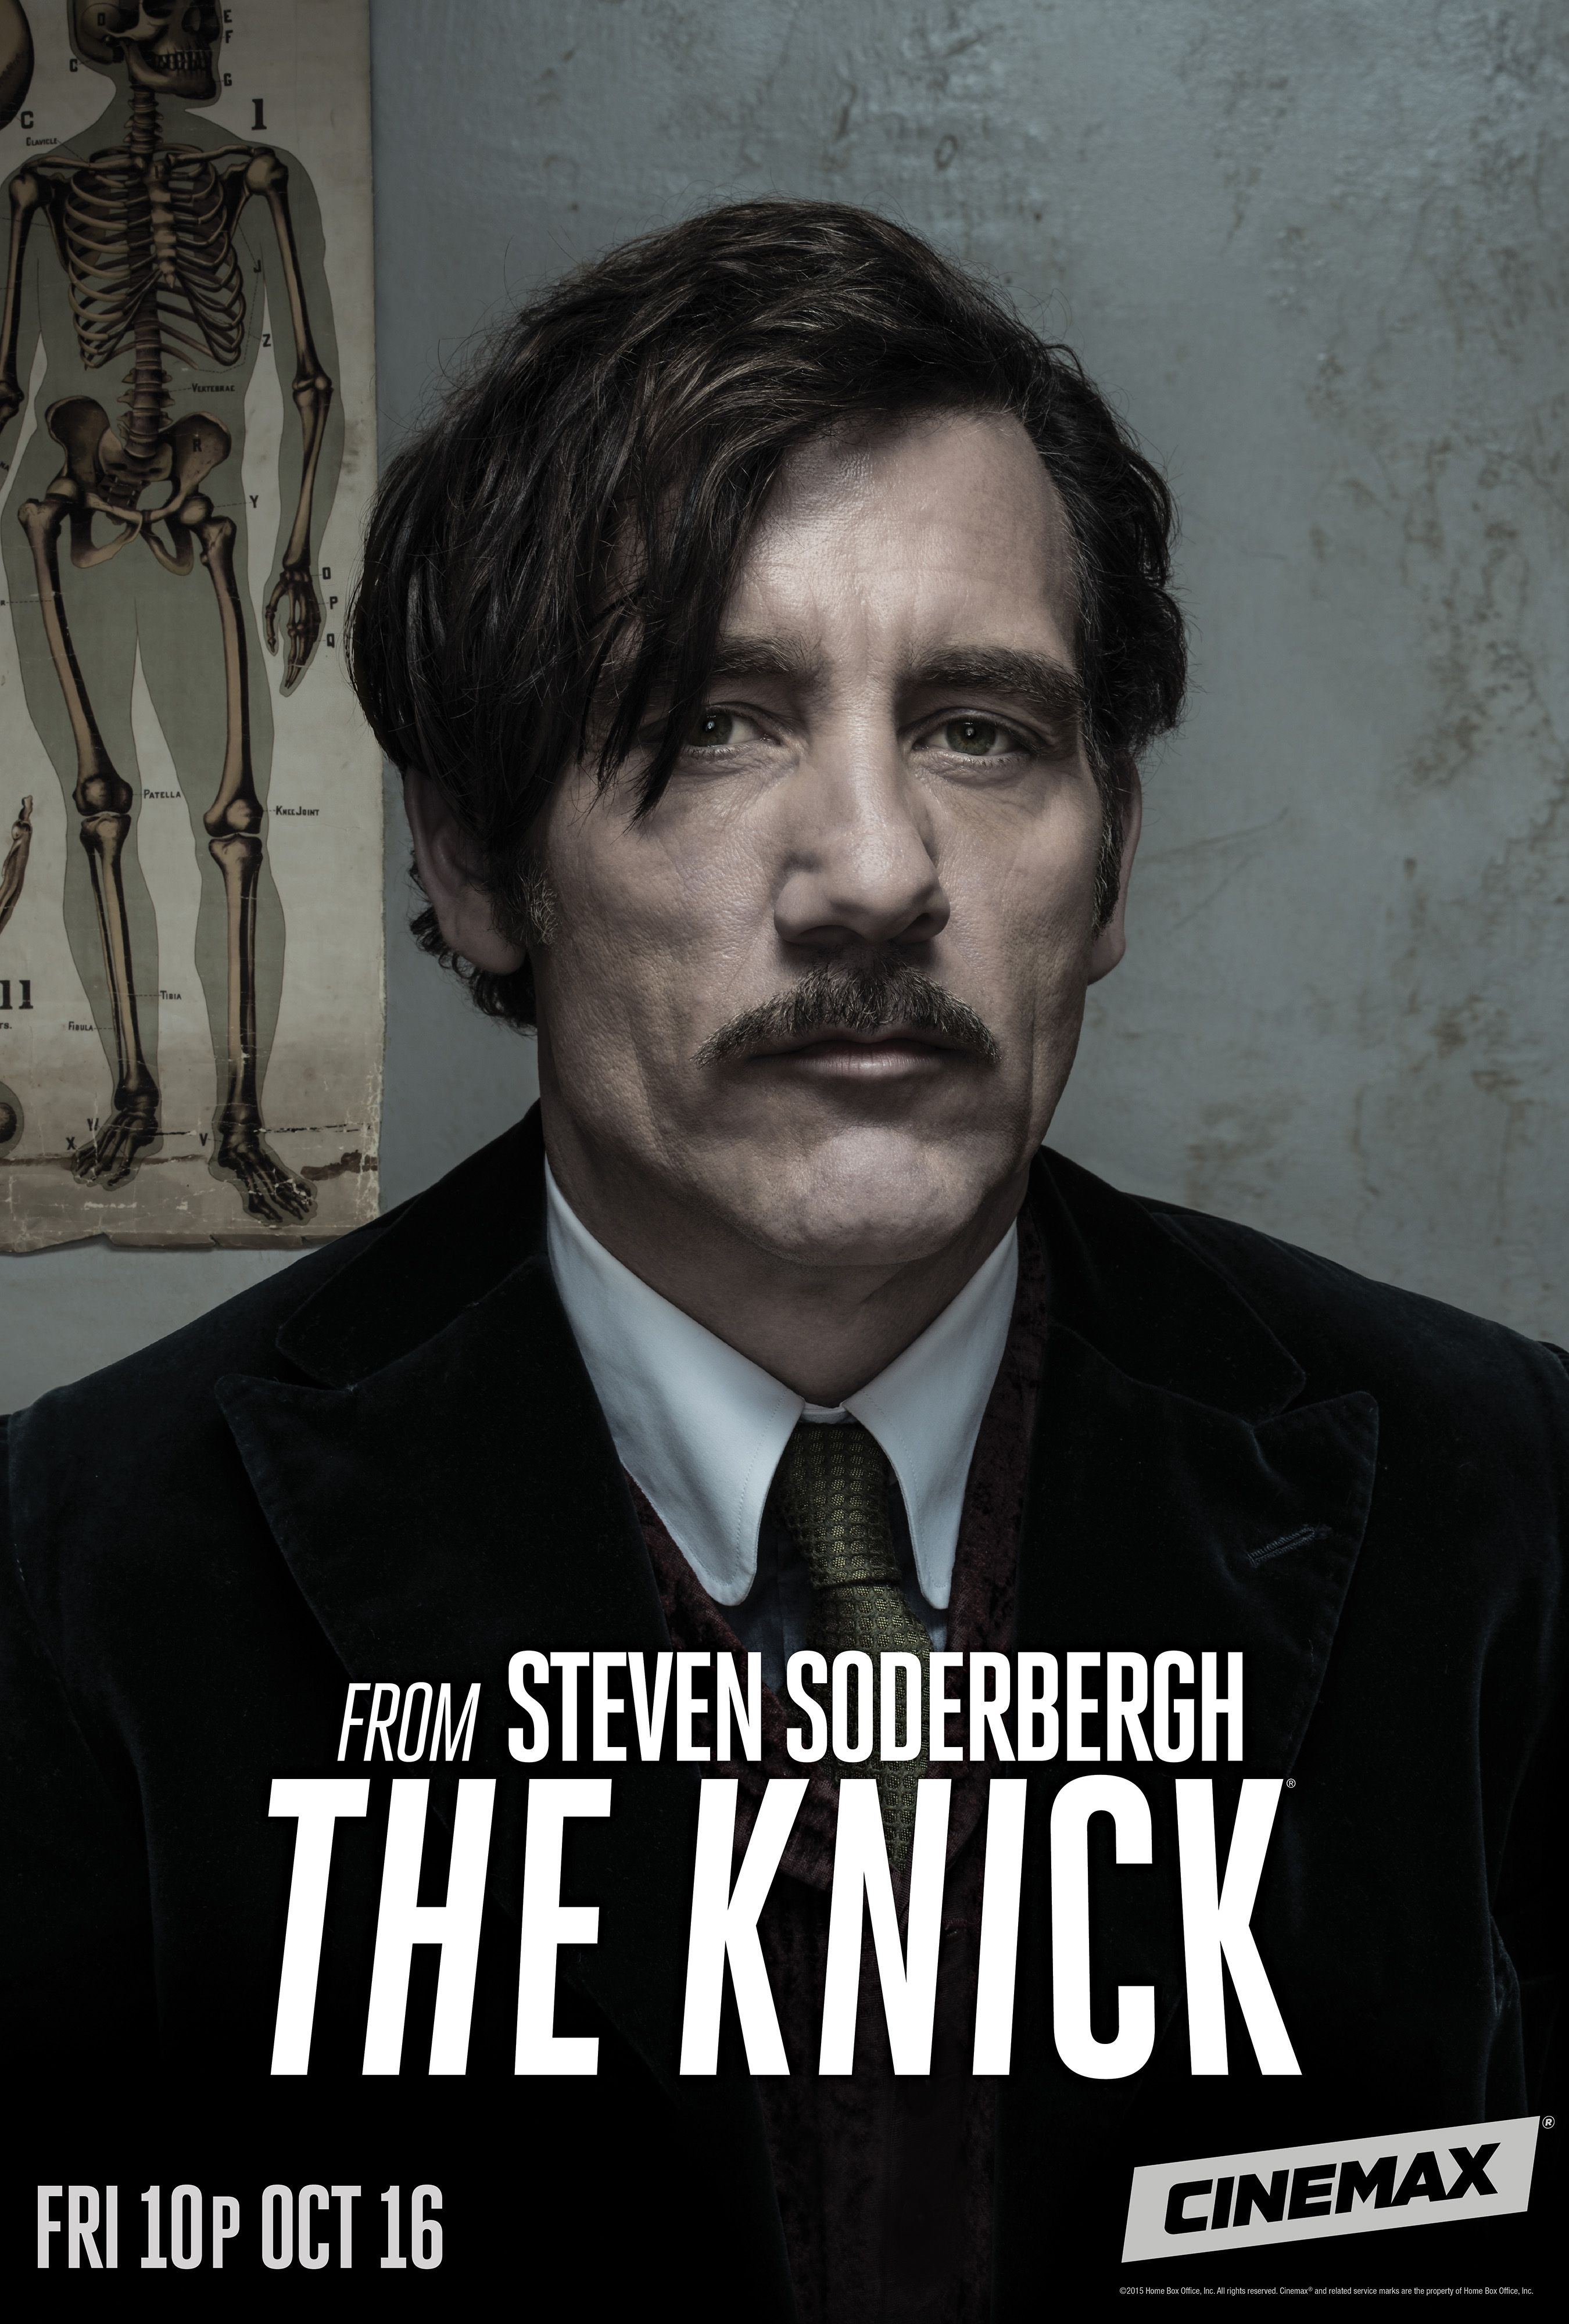 The Knick Season 2 Clive Owen The Knick Clive Owen Tv Series Online